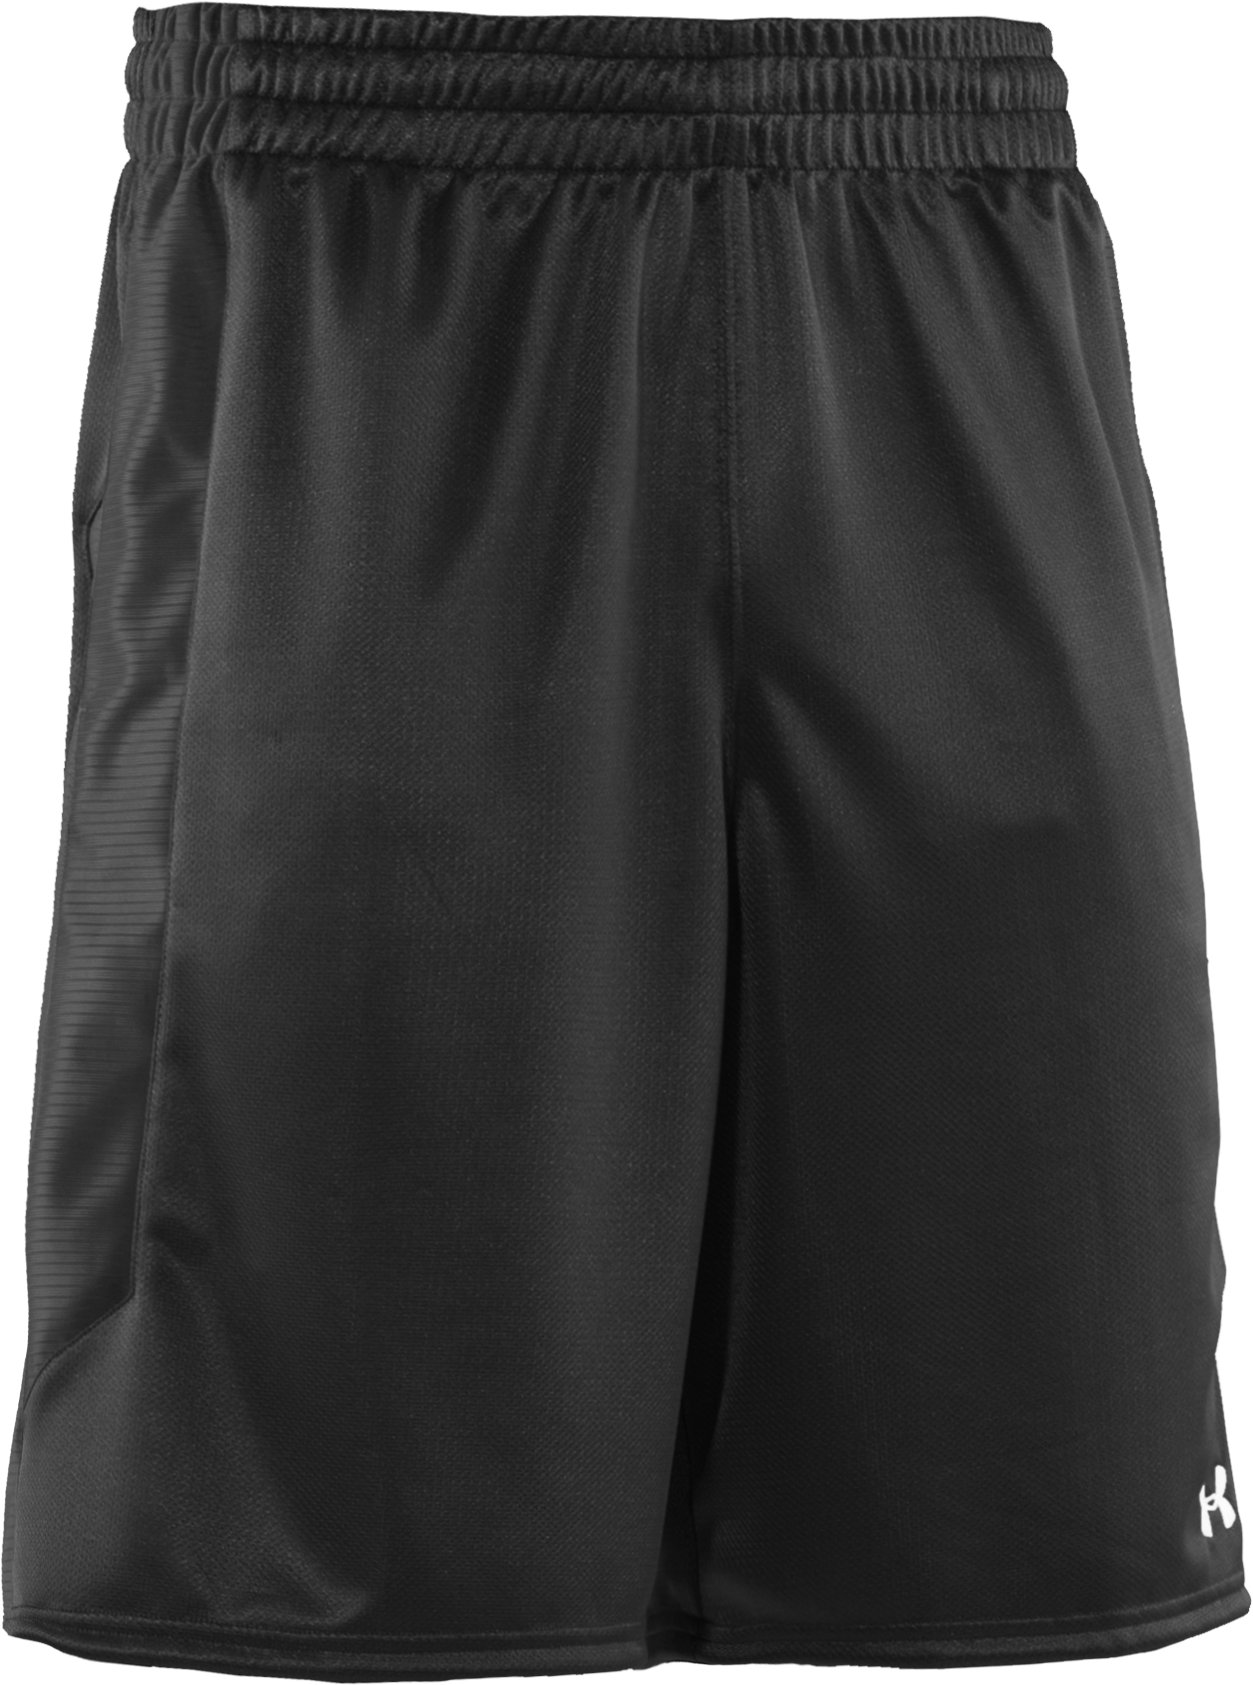 "Men's UA Never Lose 10"" Basketball Shorts, Black ,"